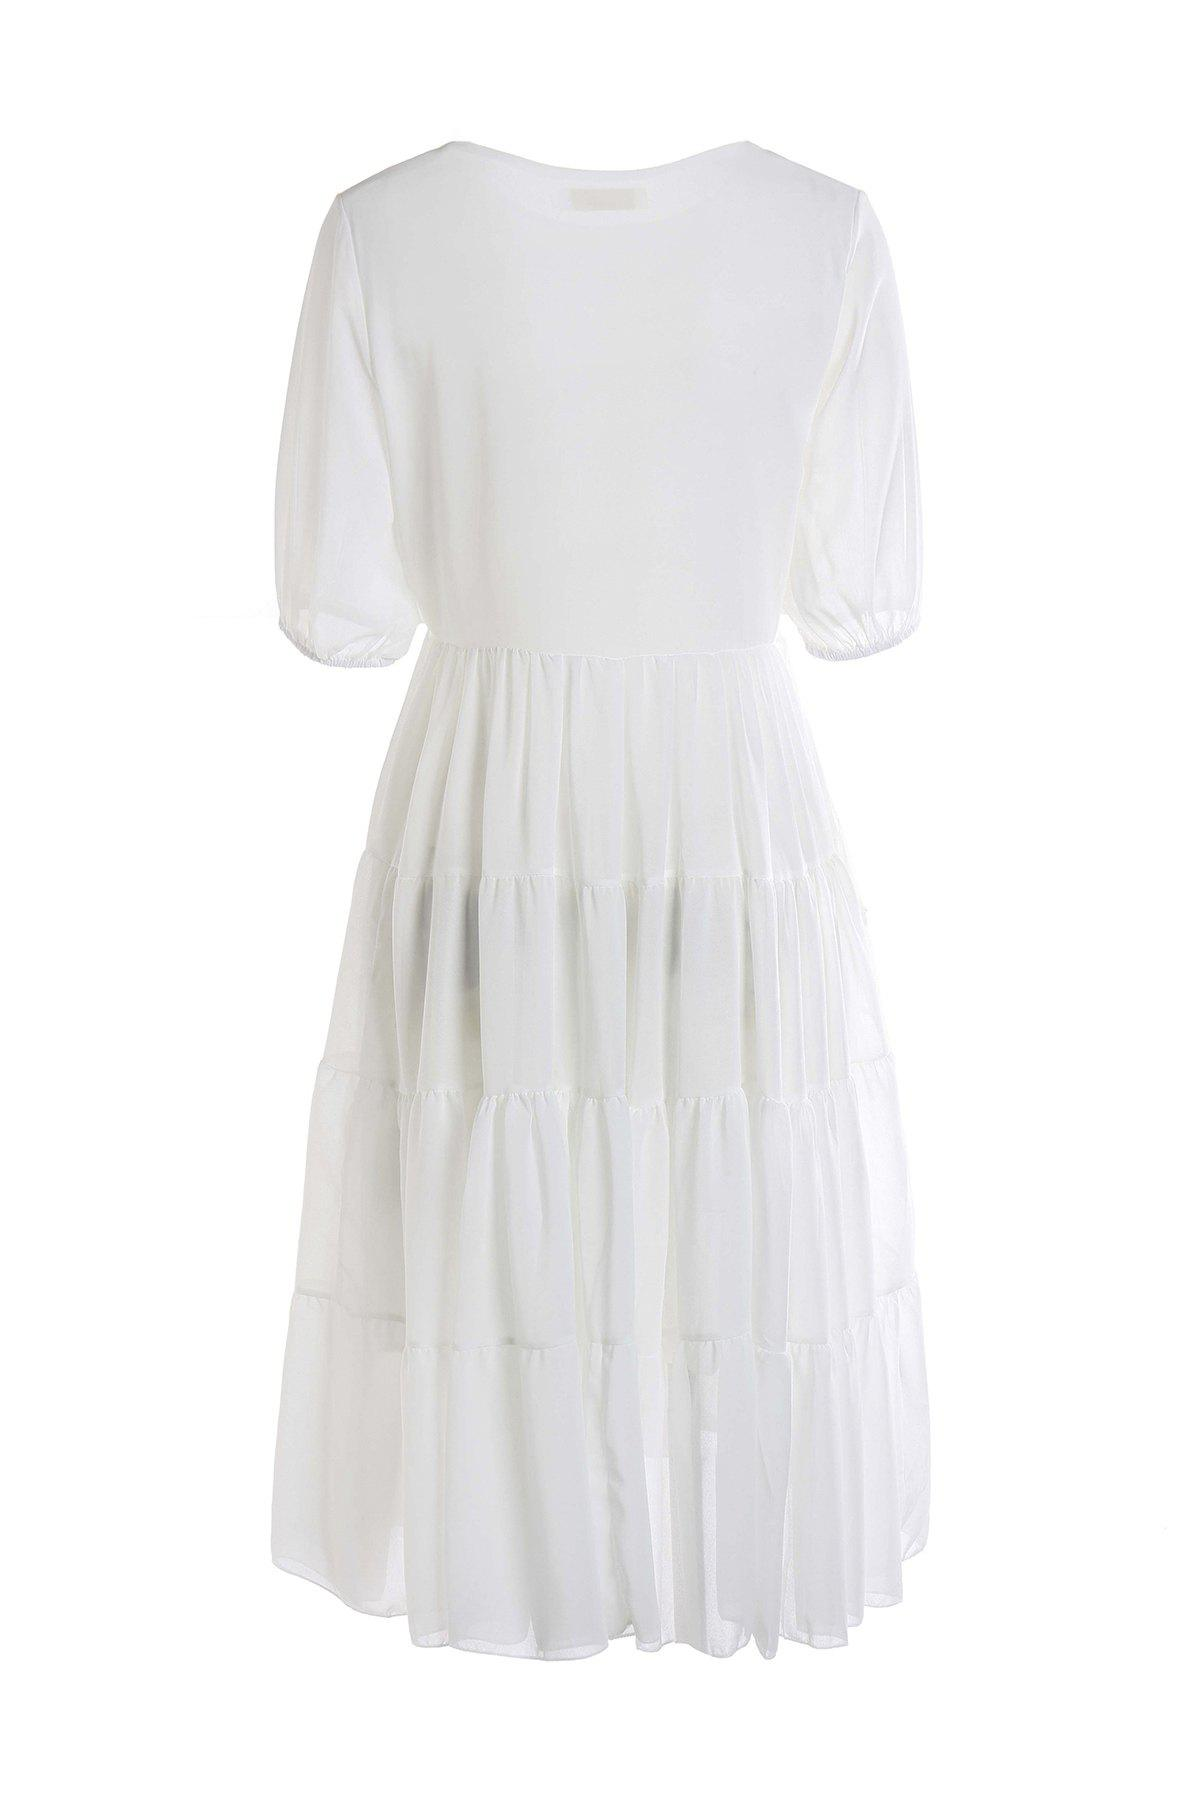 Stylish Scoop Neck Short Sleeve White Women's Maxi Dress - WHITE L